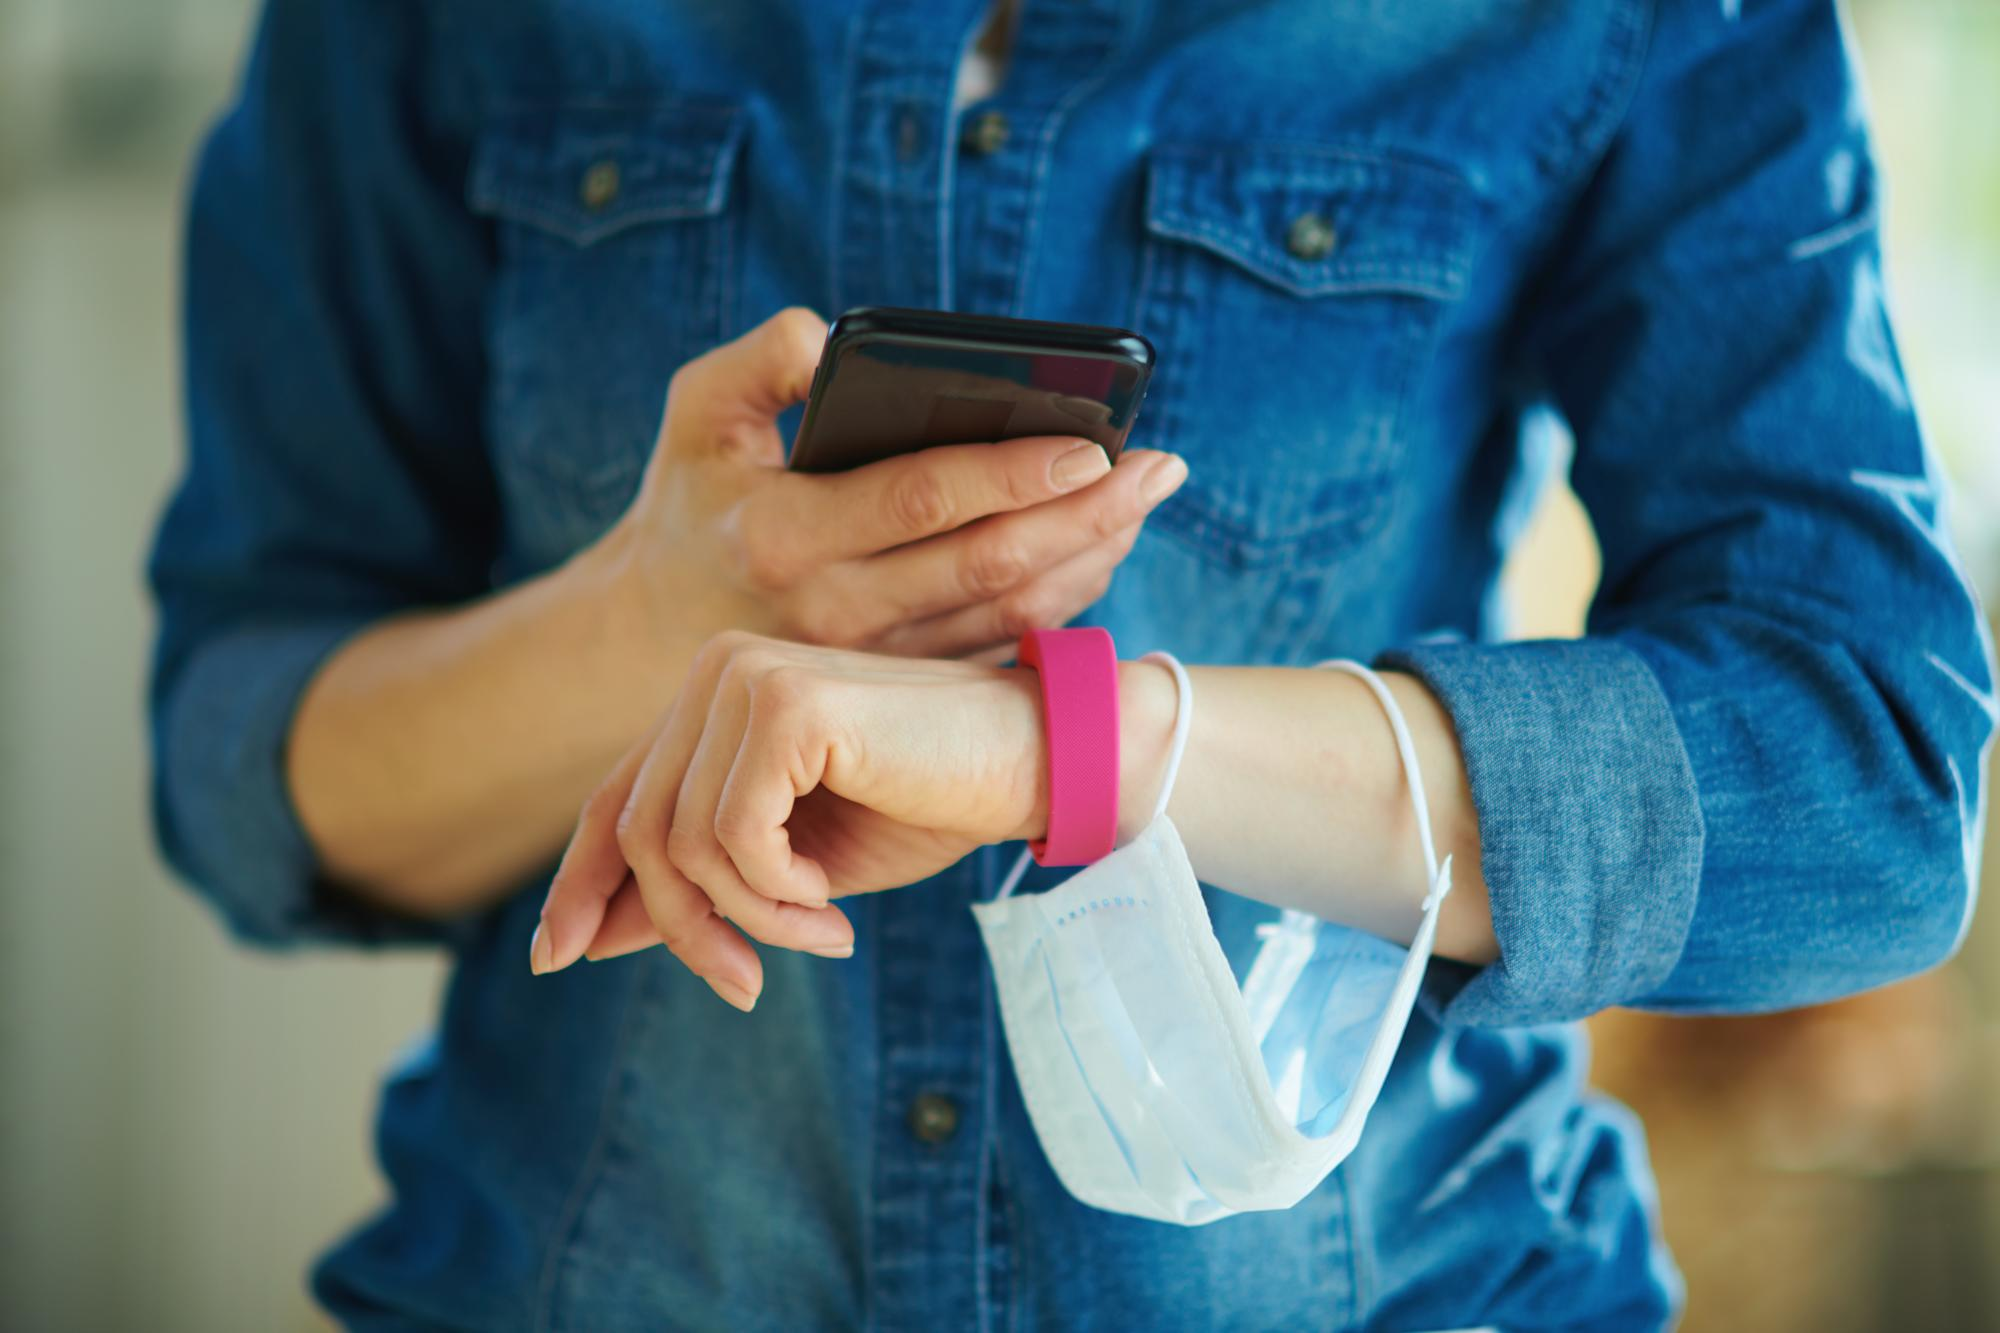 'Chances of bias increases' with the use of COVID-19 contact tracing wearable